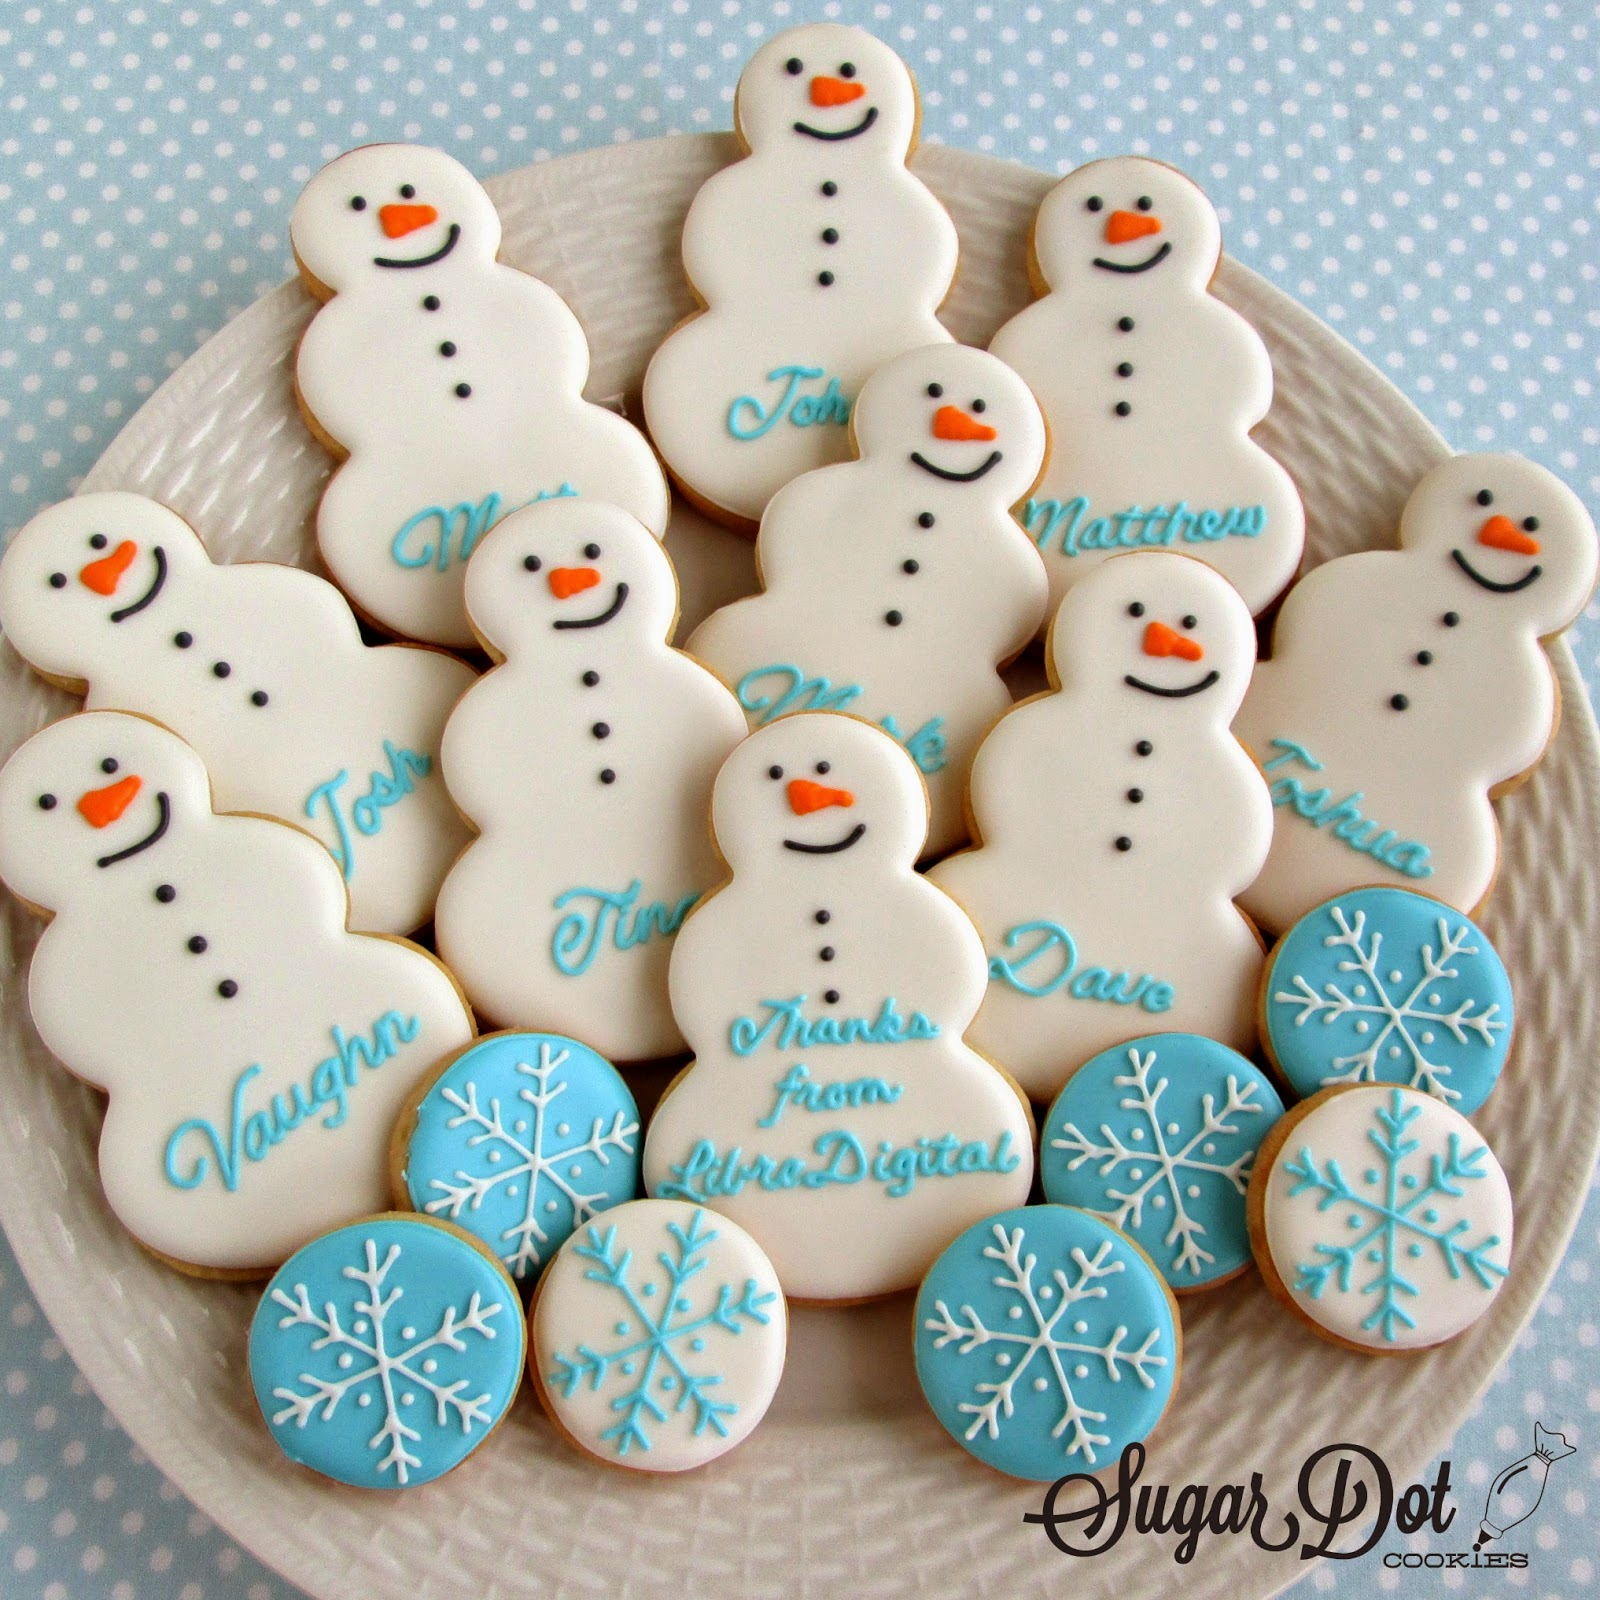 Personalized Snowmen As A Corporate Thank You Gift